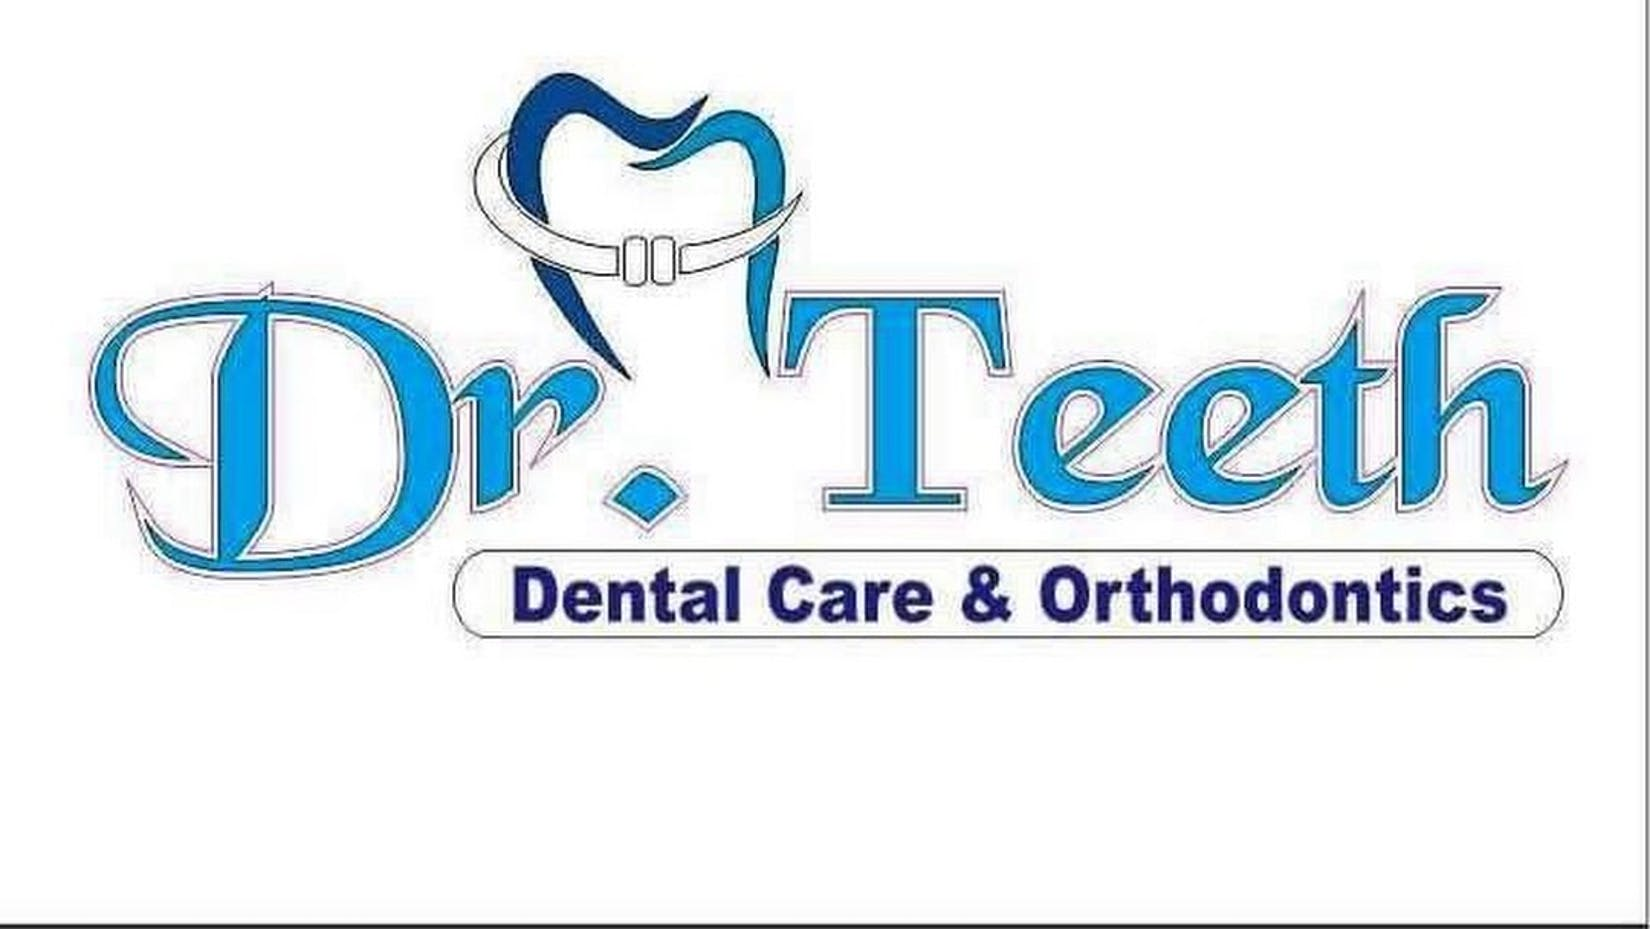 Dr. Teeth Dental Care and Orthodontics | Medical